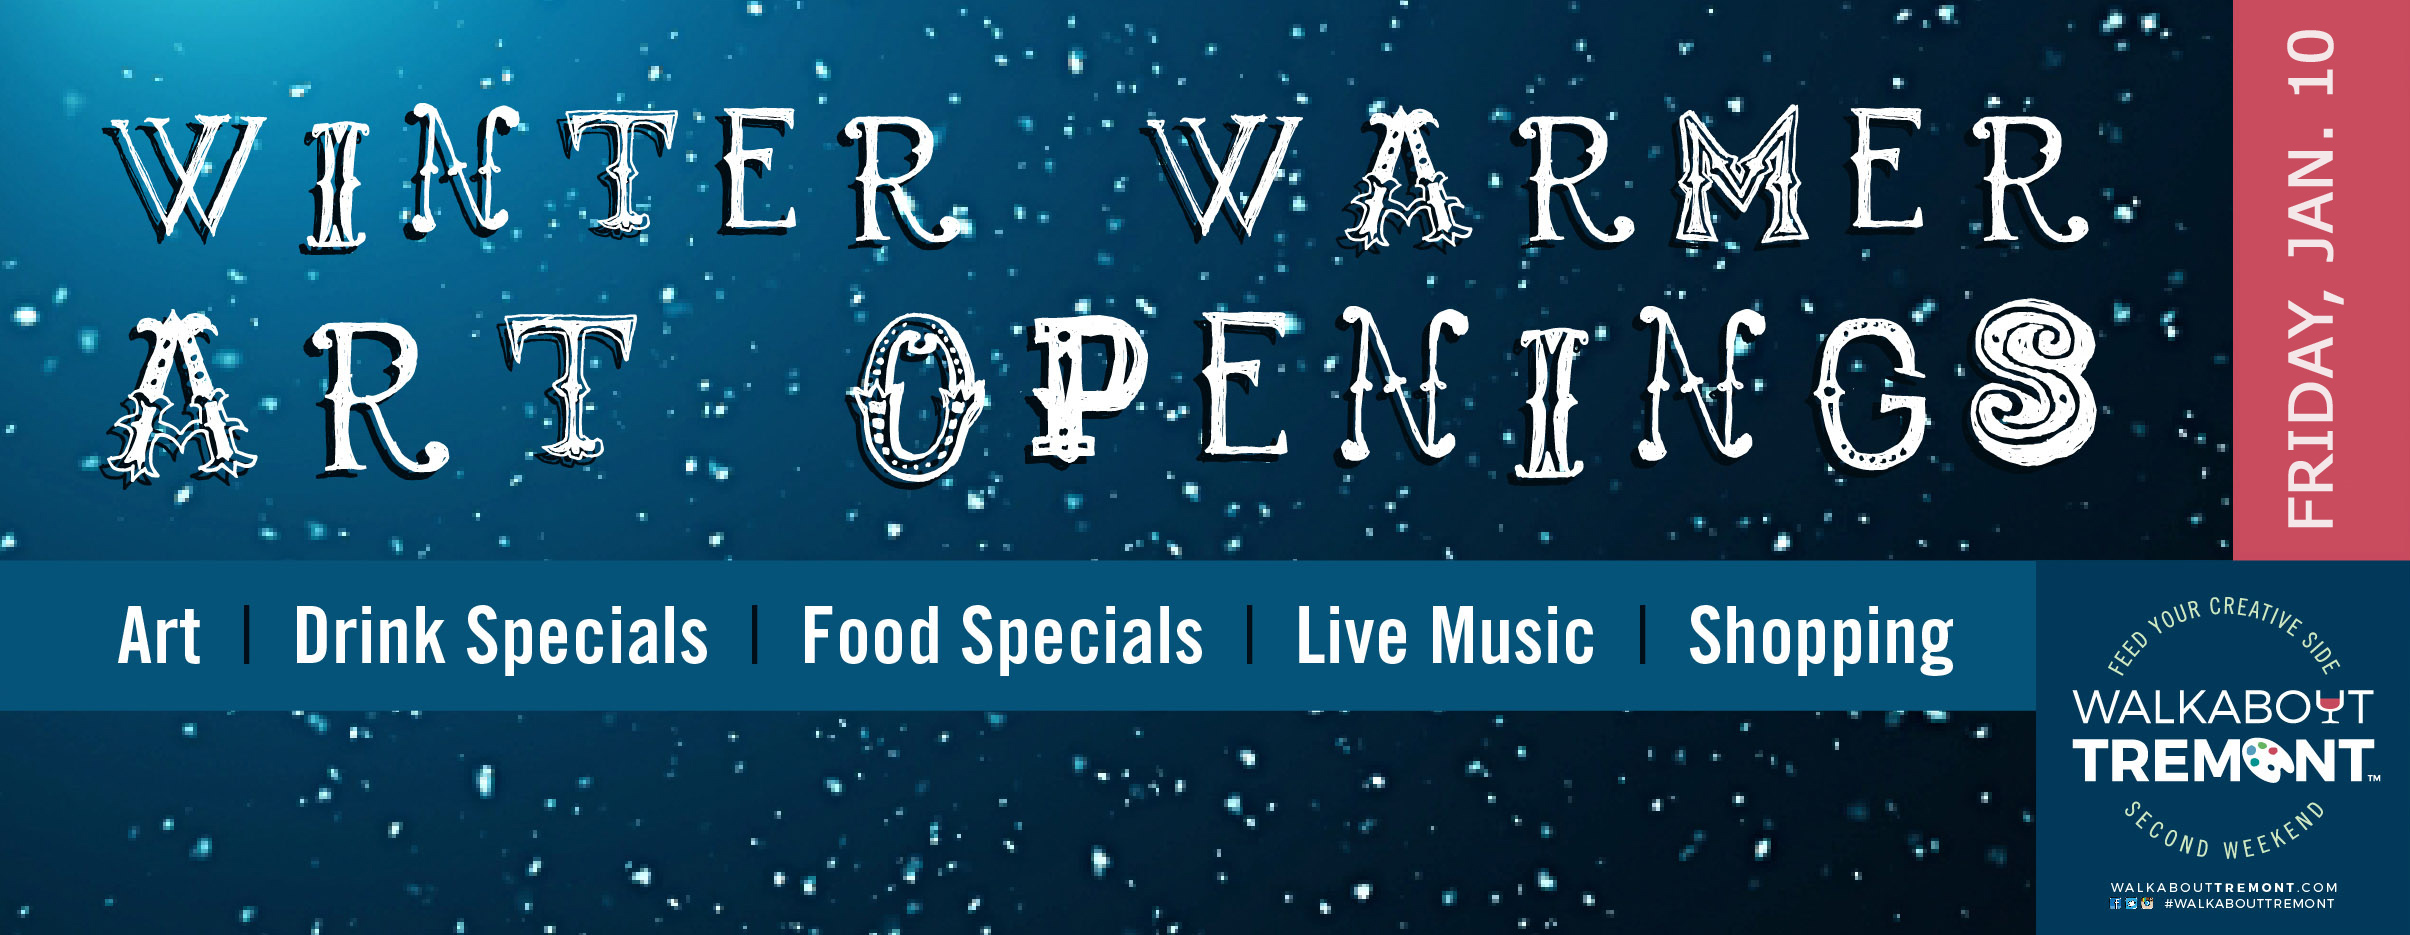 WINTER WARMER WALKABOUT FEATURES ART OPENINGS, LIVE MUSIC, FOOD & DRINK